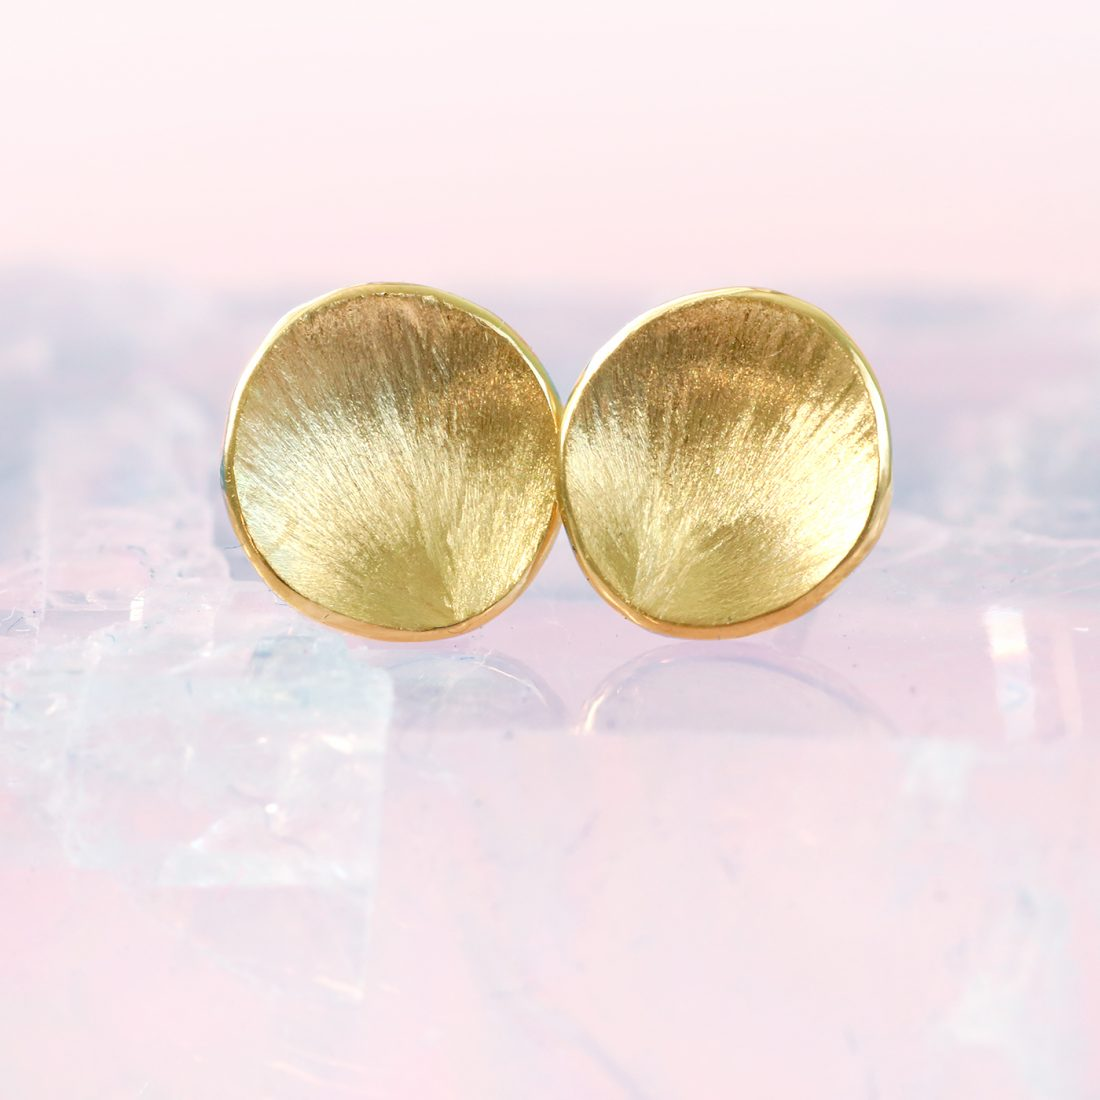 18ct gold petals stud earrings